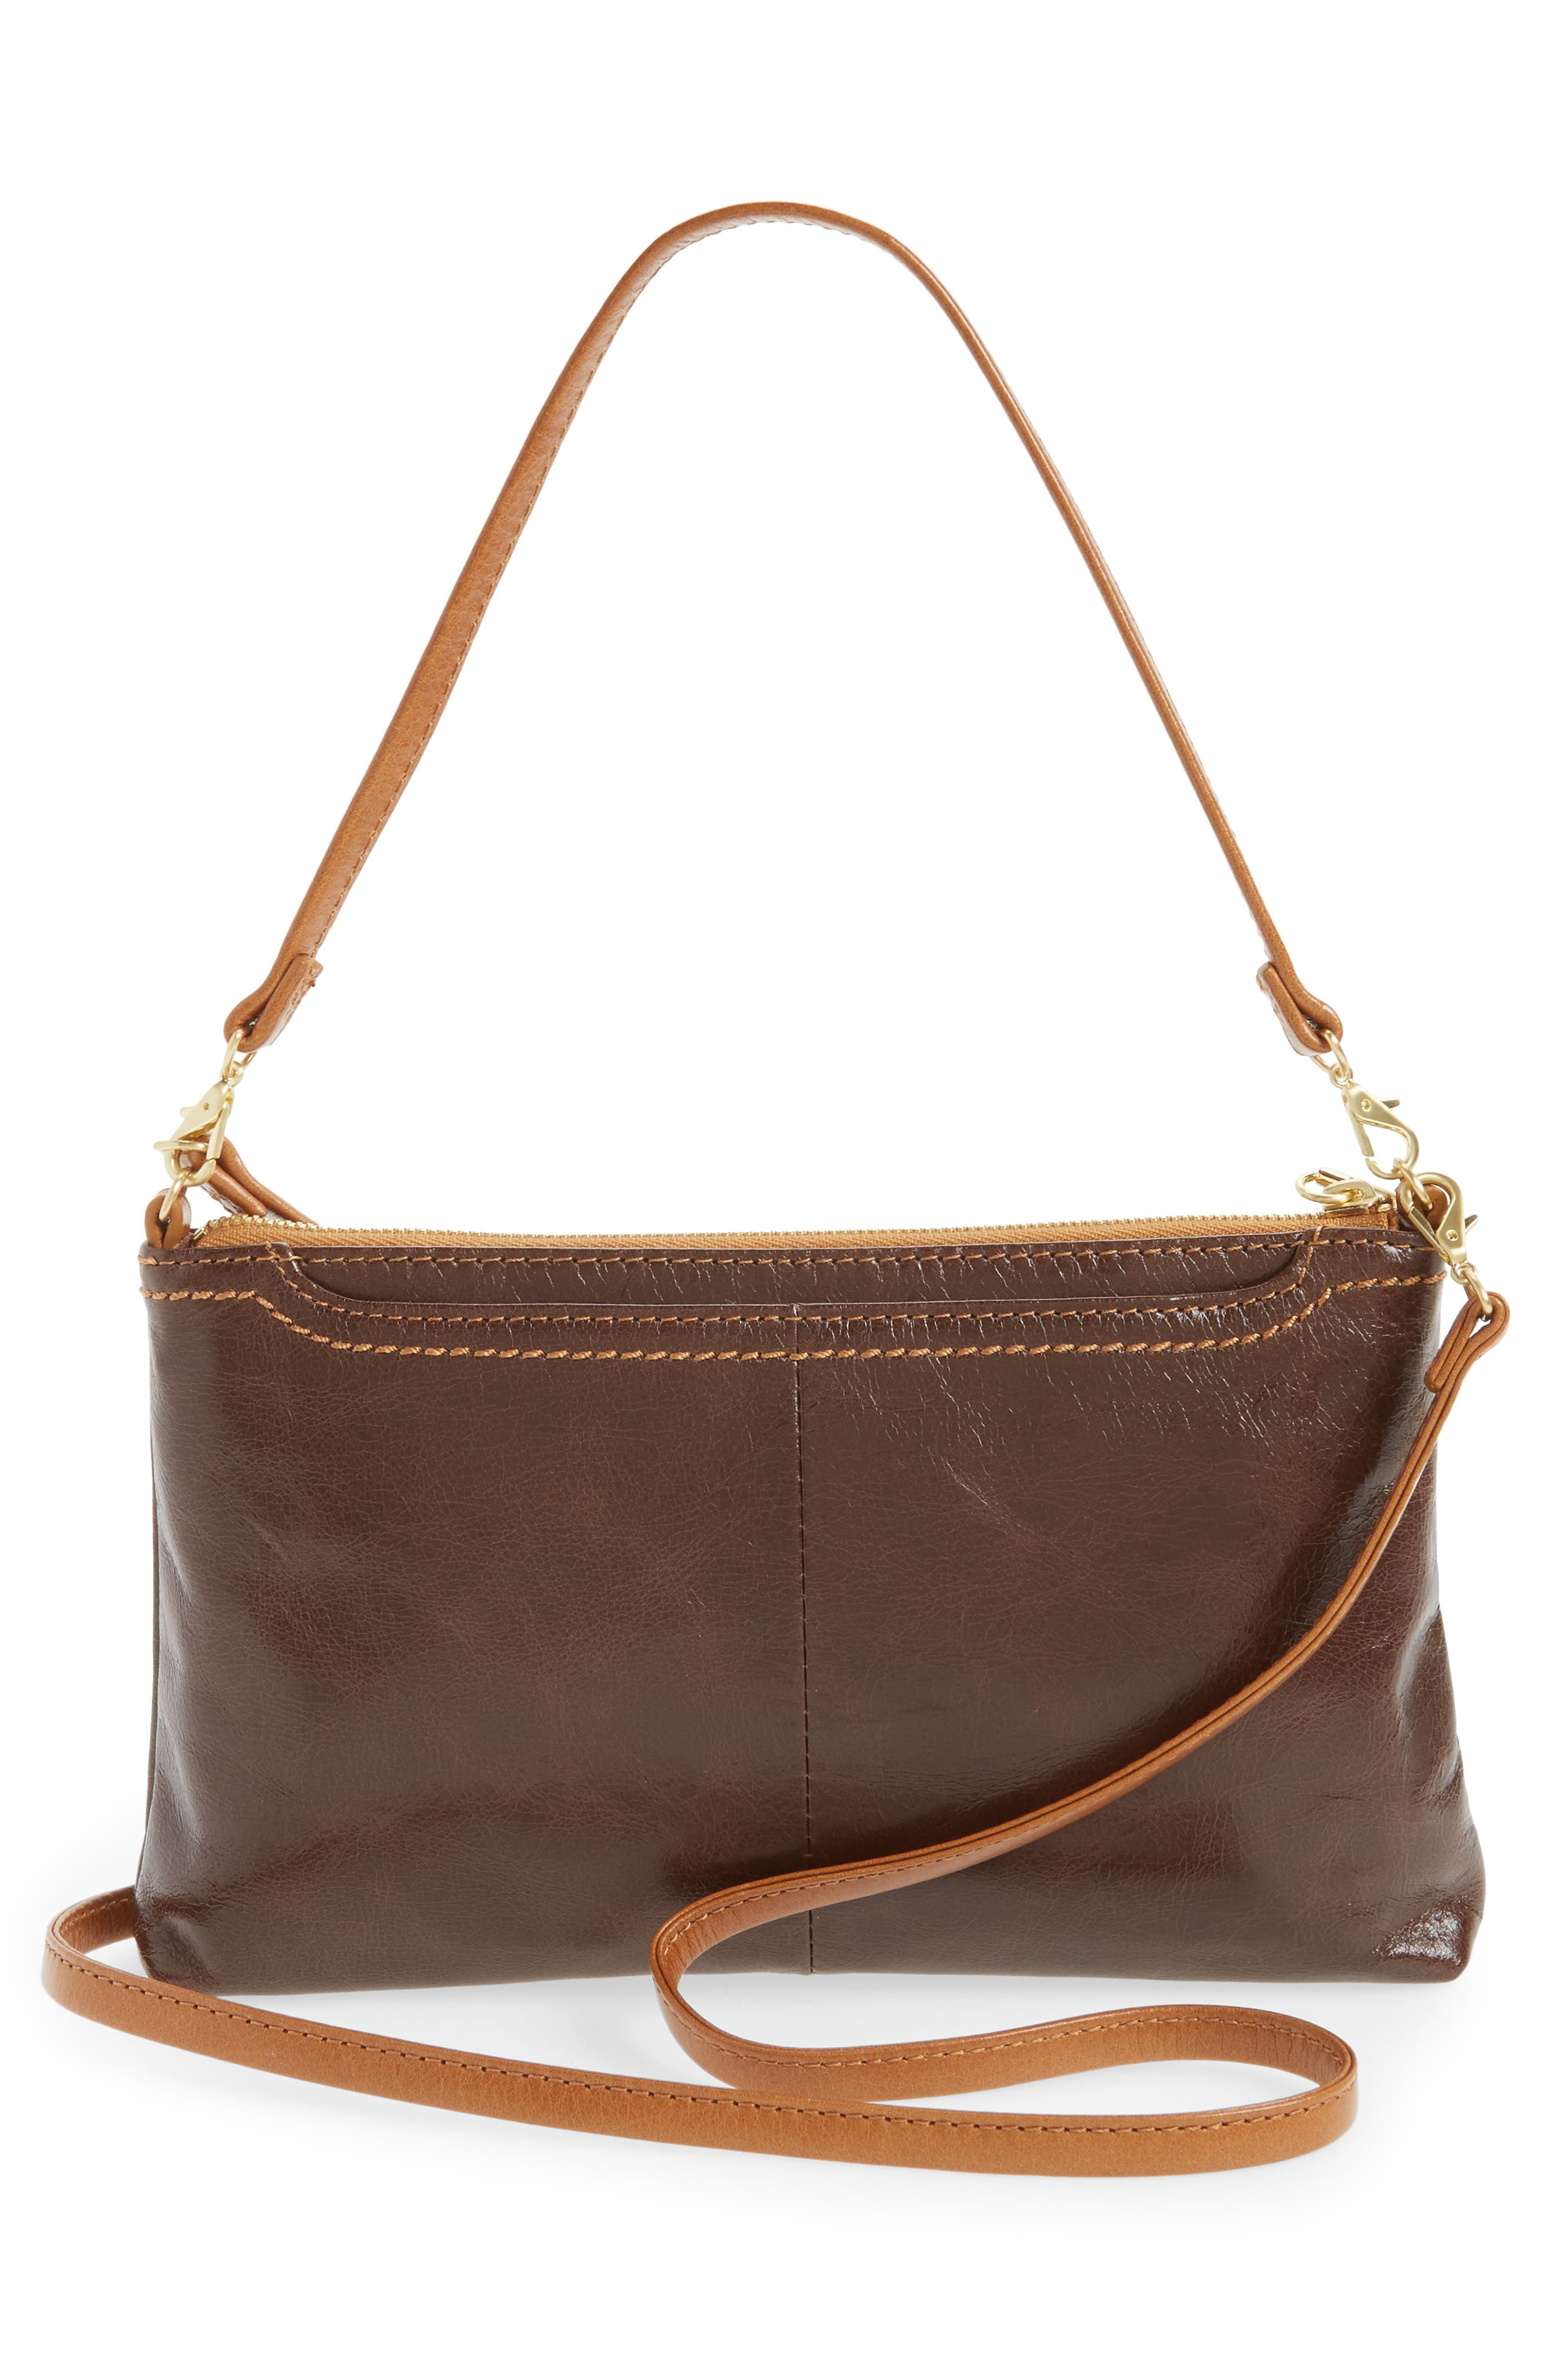 'Darcy' Leather Crossbody Bag,                             Alternate thumbnail 63, color,